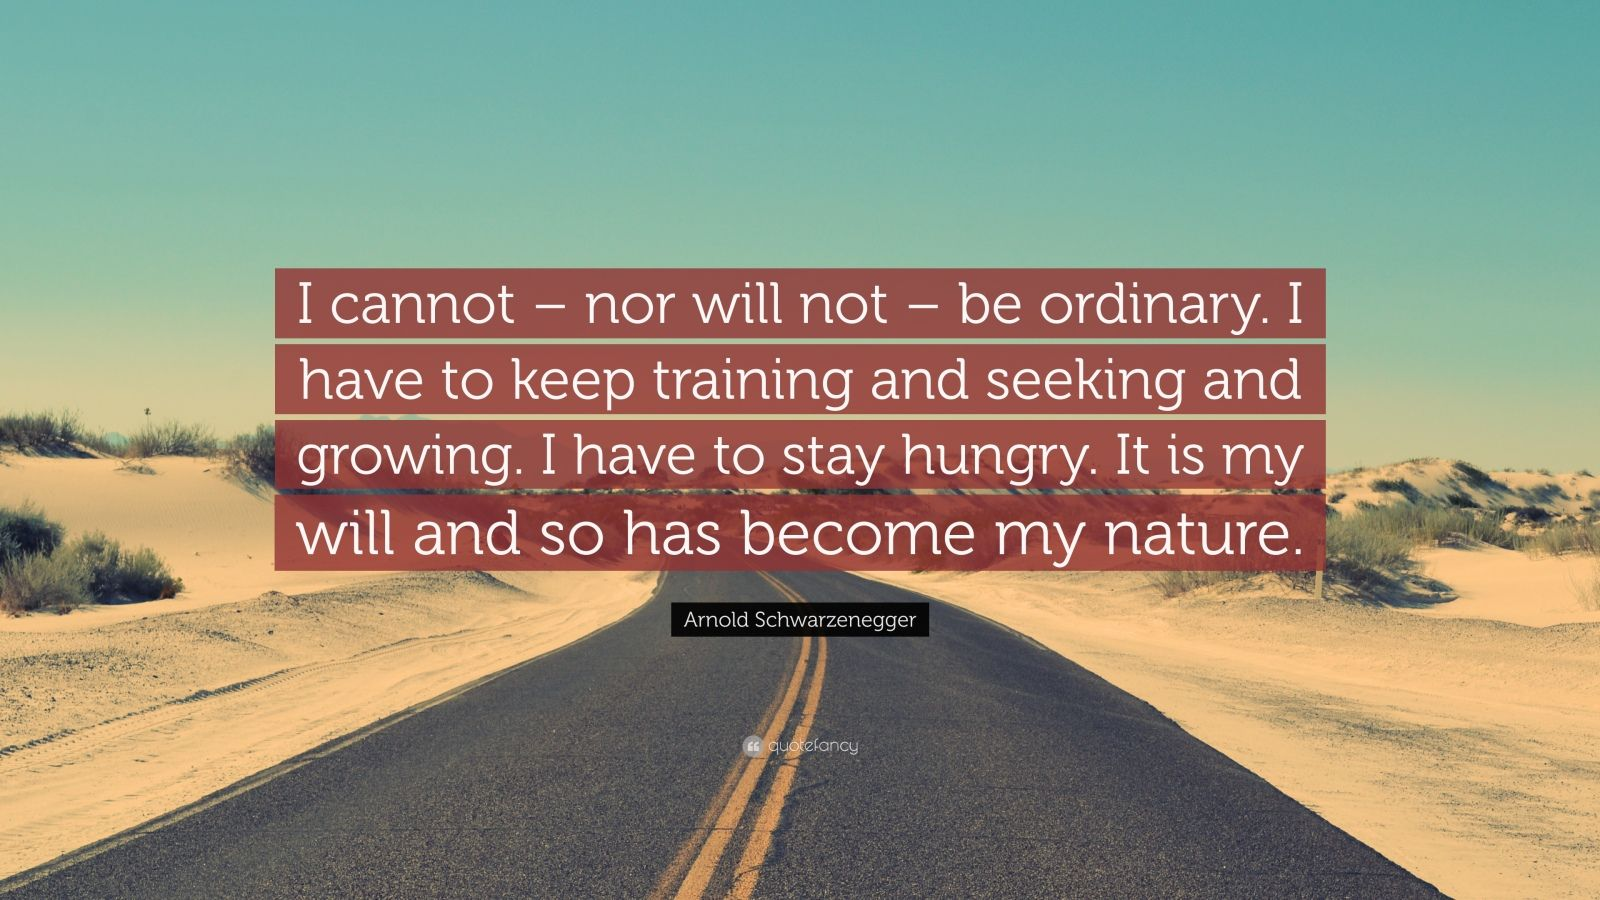 """Arnold Schwarzenegger Quote: """"I cannot – nor will not – be ordinary. I have to keep training and seeking and growing. I have to stay hungry. It is my will and so has become my nature."""""""